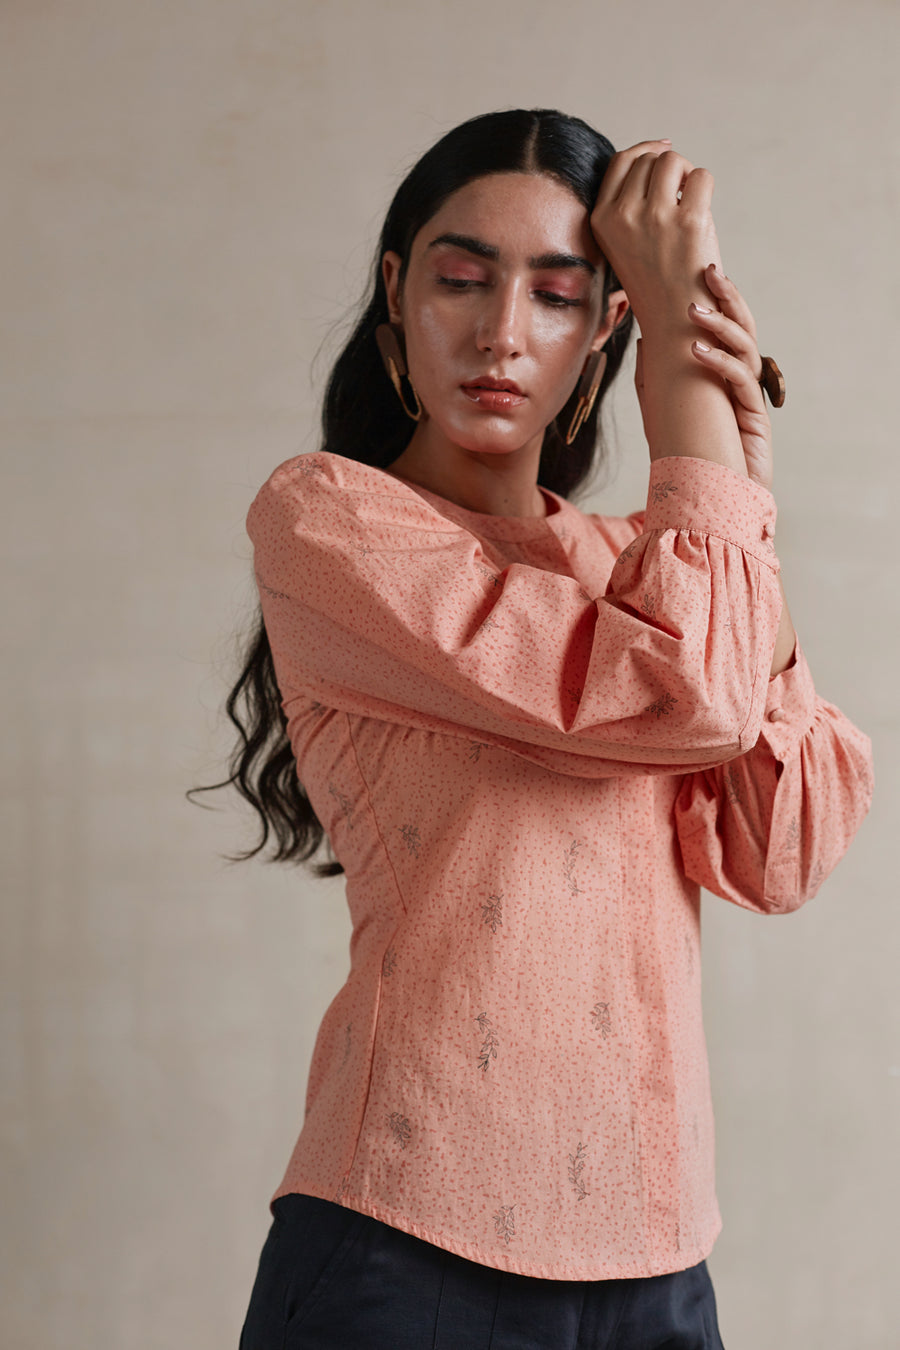 Peach Parfait Romantic Shirt - Ethical made fashion - onlyethikal